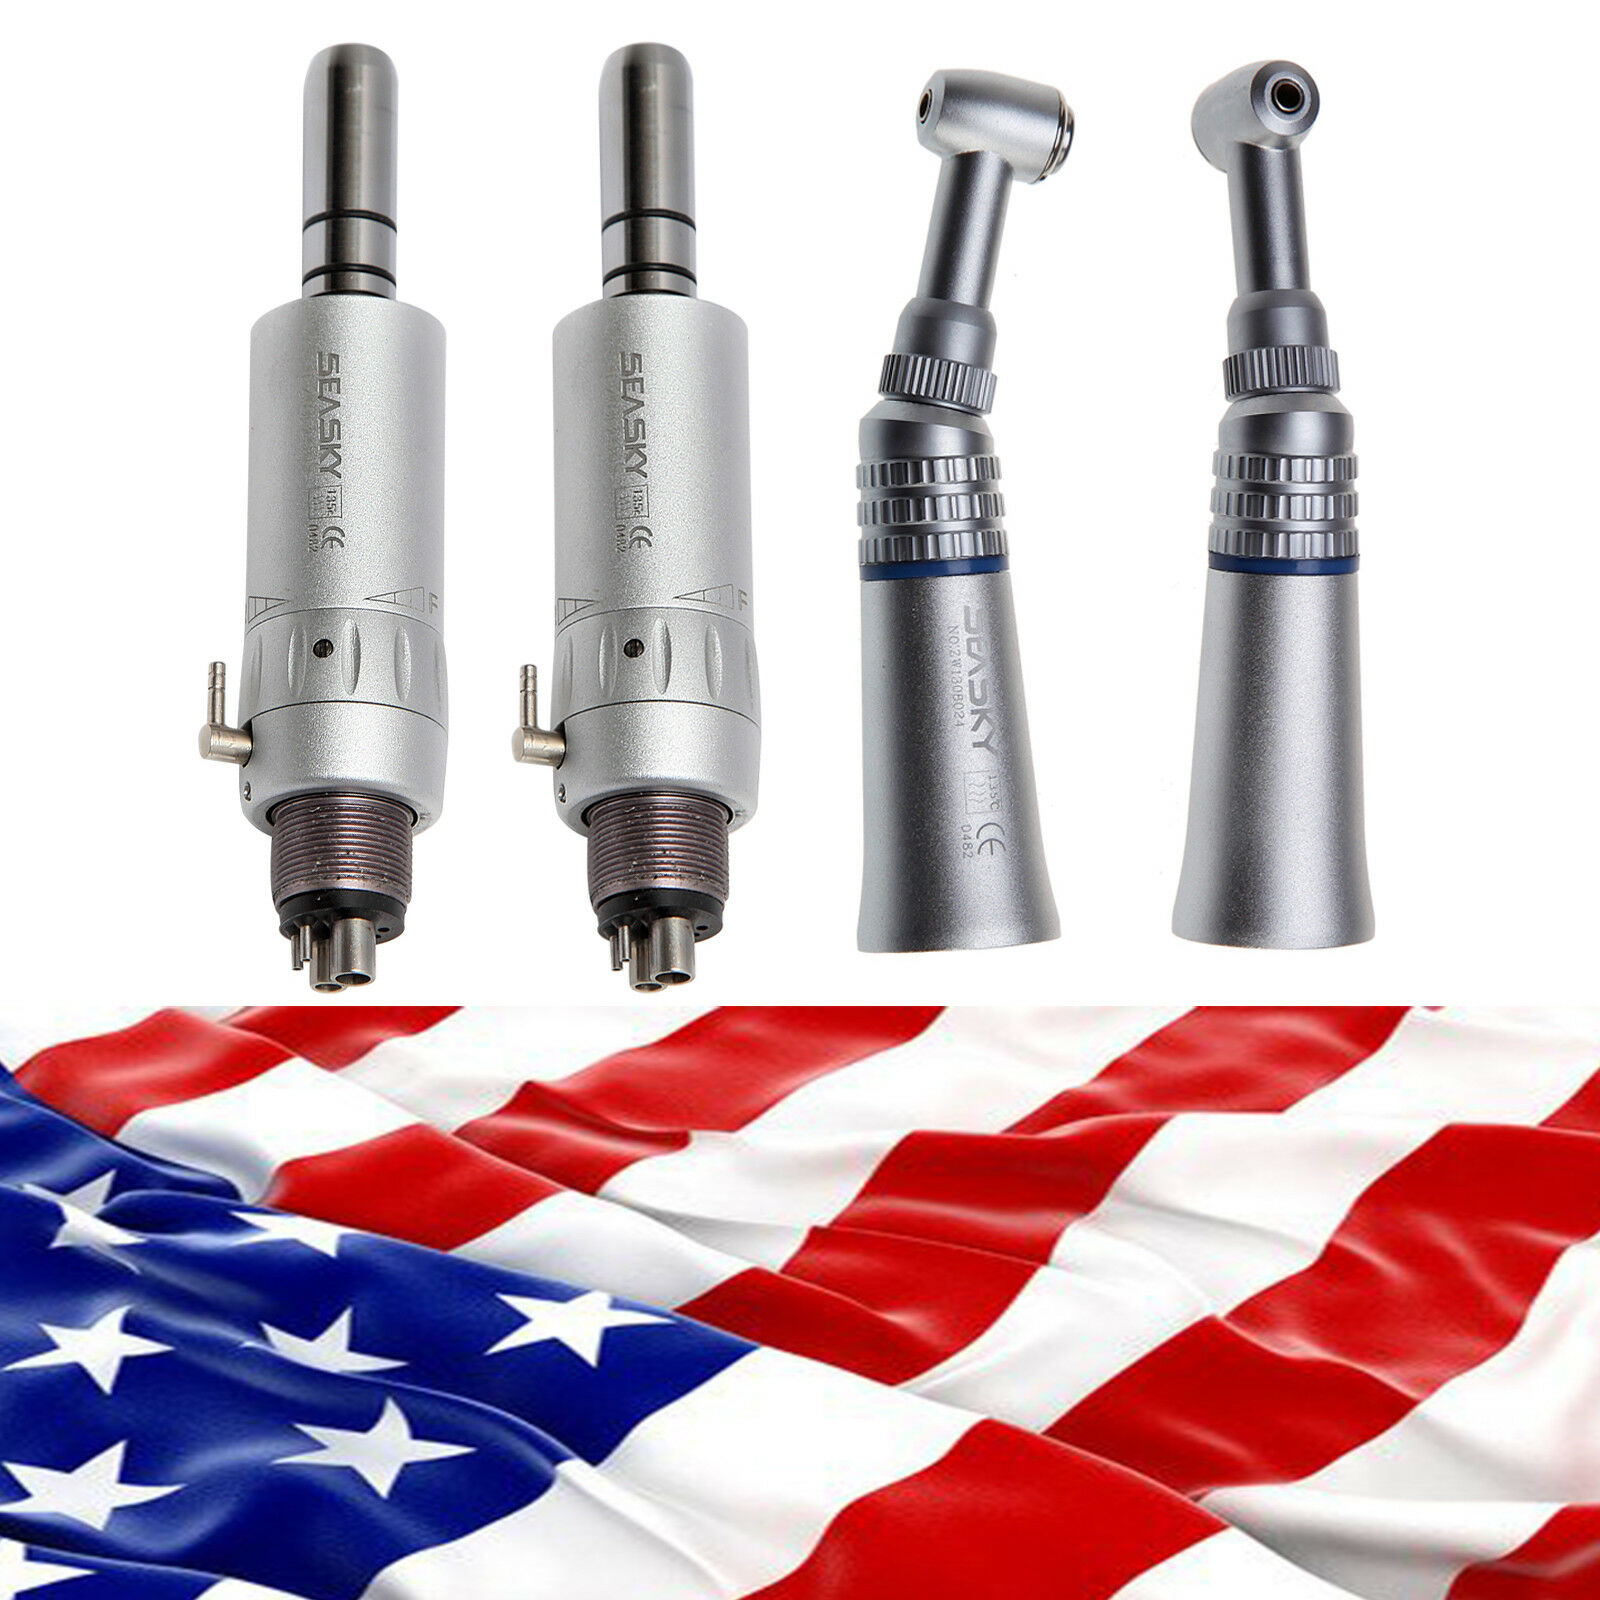 2Kit USA Dental Slow Low Speed  Push Button Contra angle  Speed 4H Air Motor Handpiece aded6d